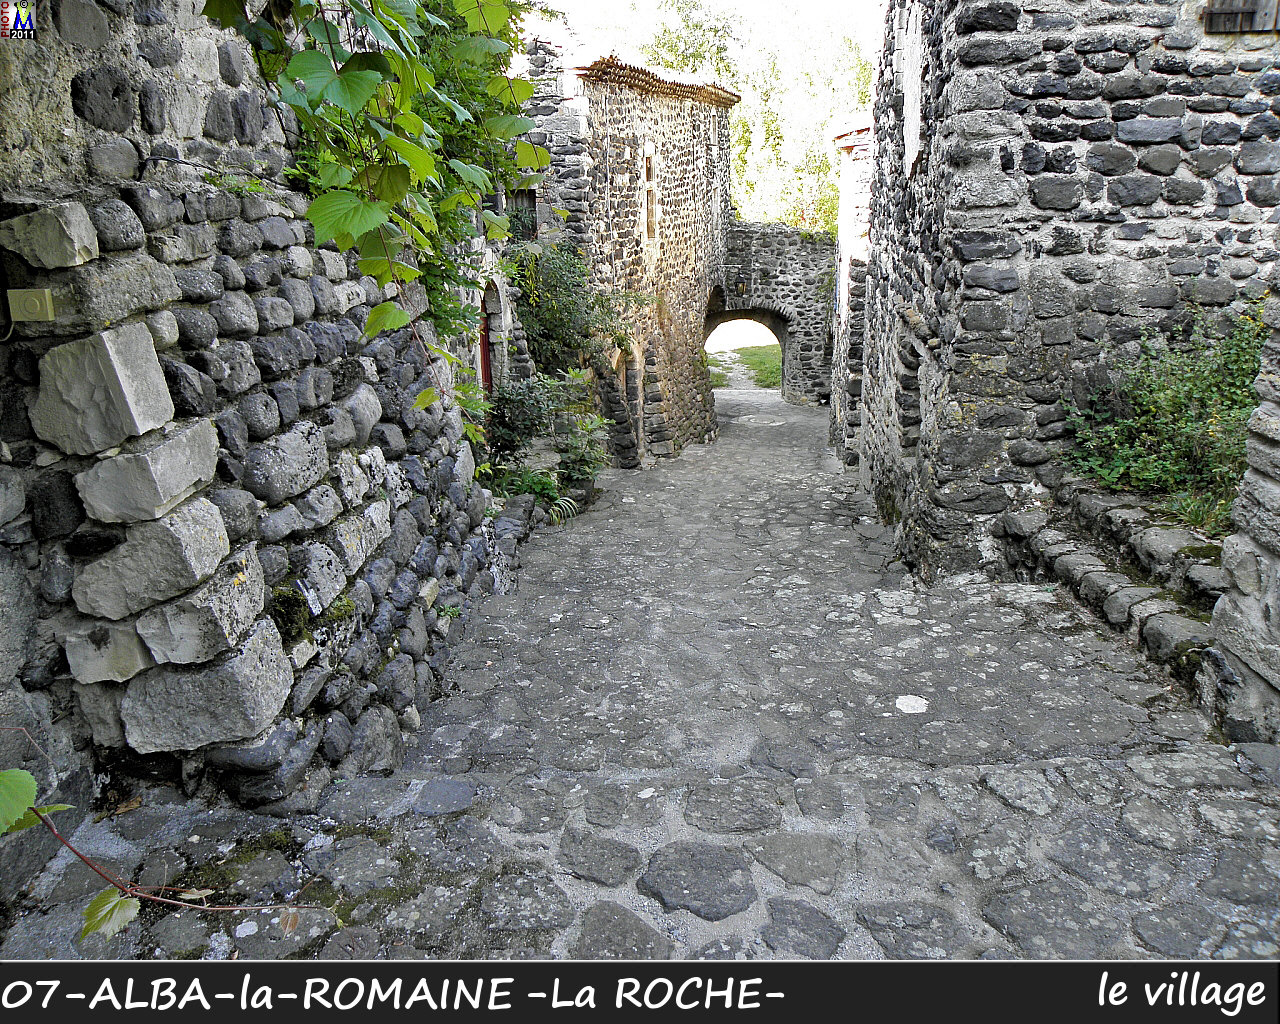 07ALBA-ROMAINEzROCHE_village_114.jpg